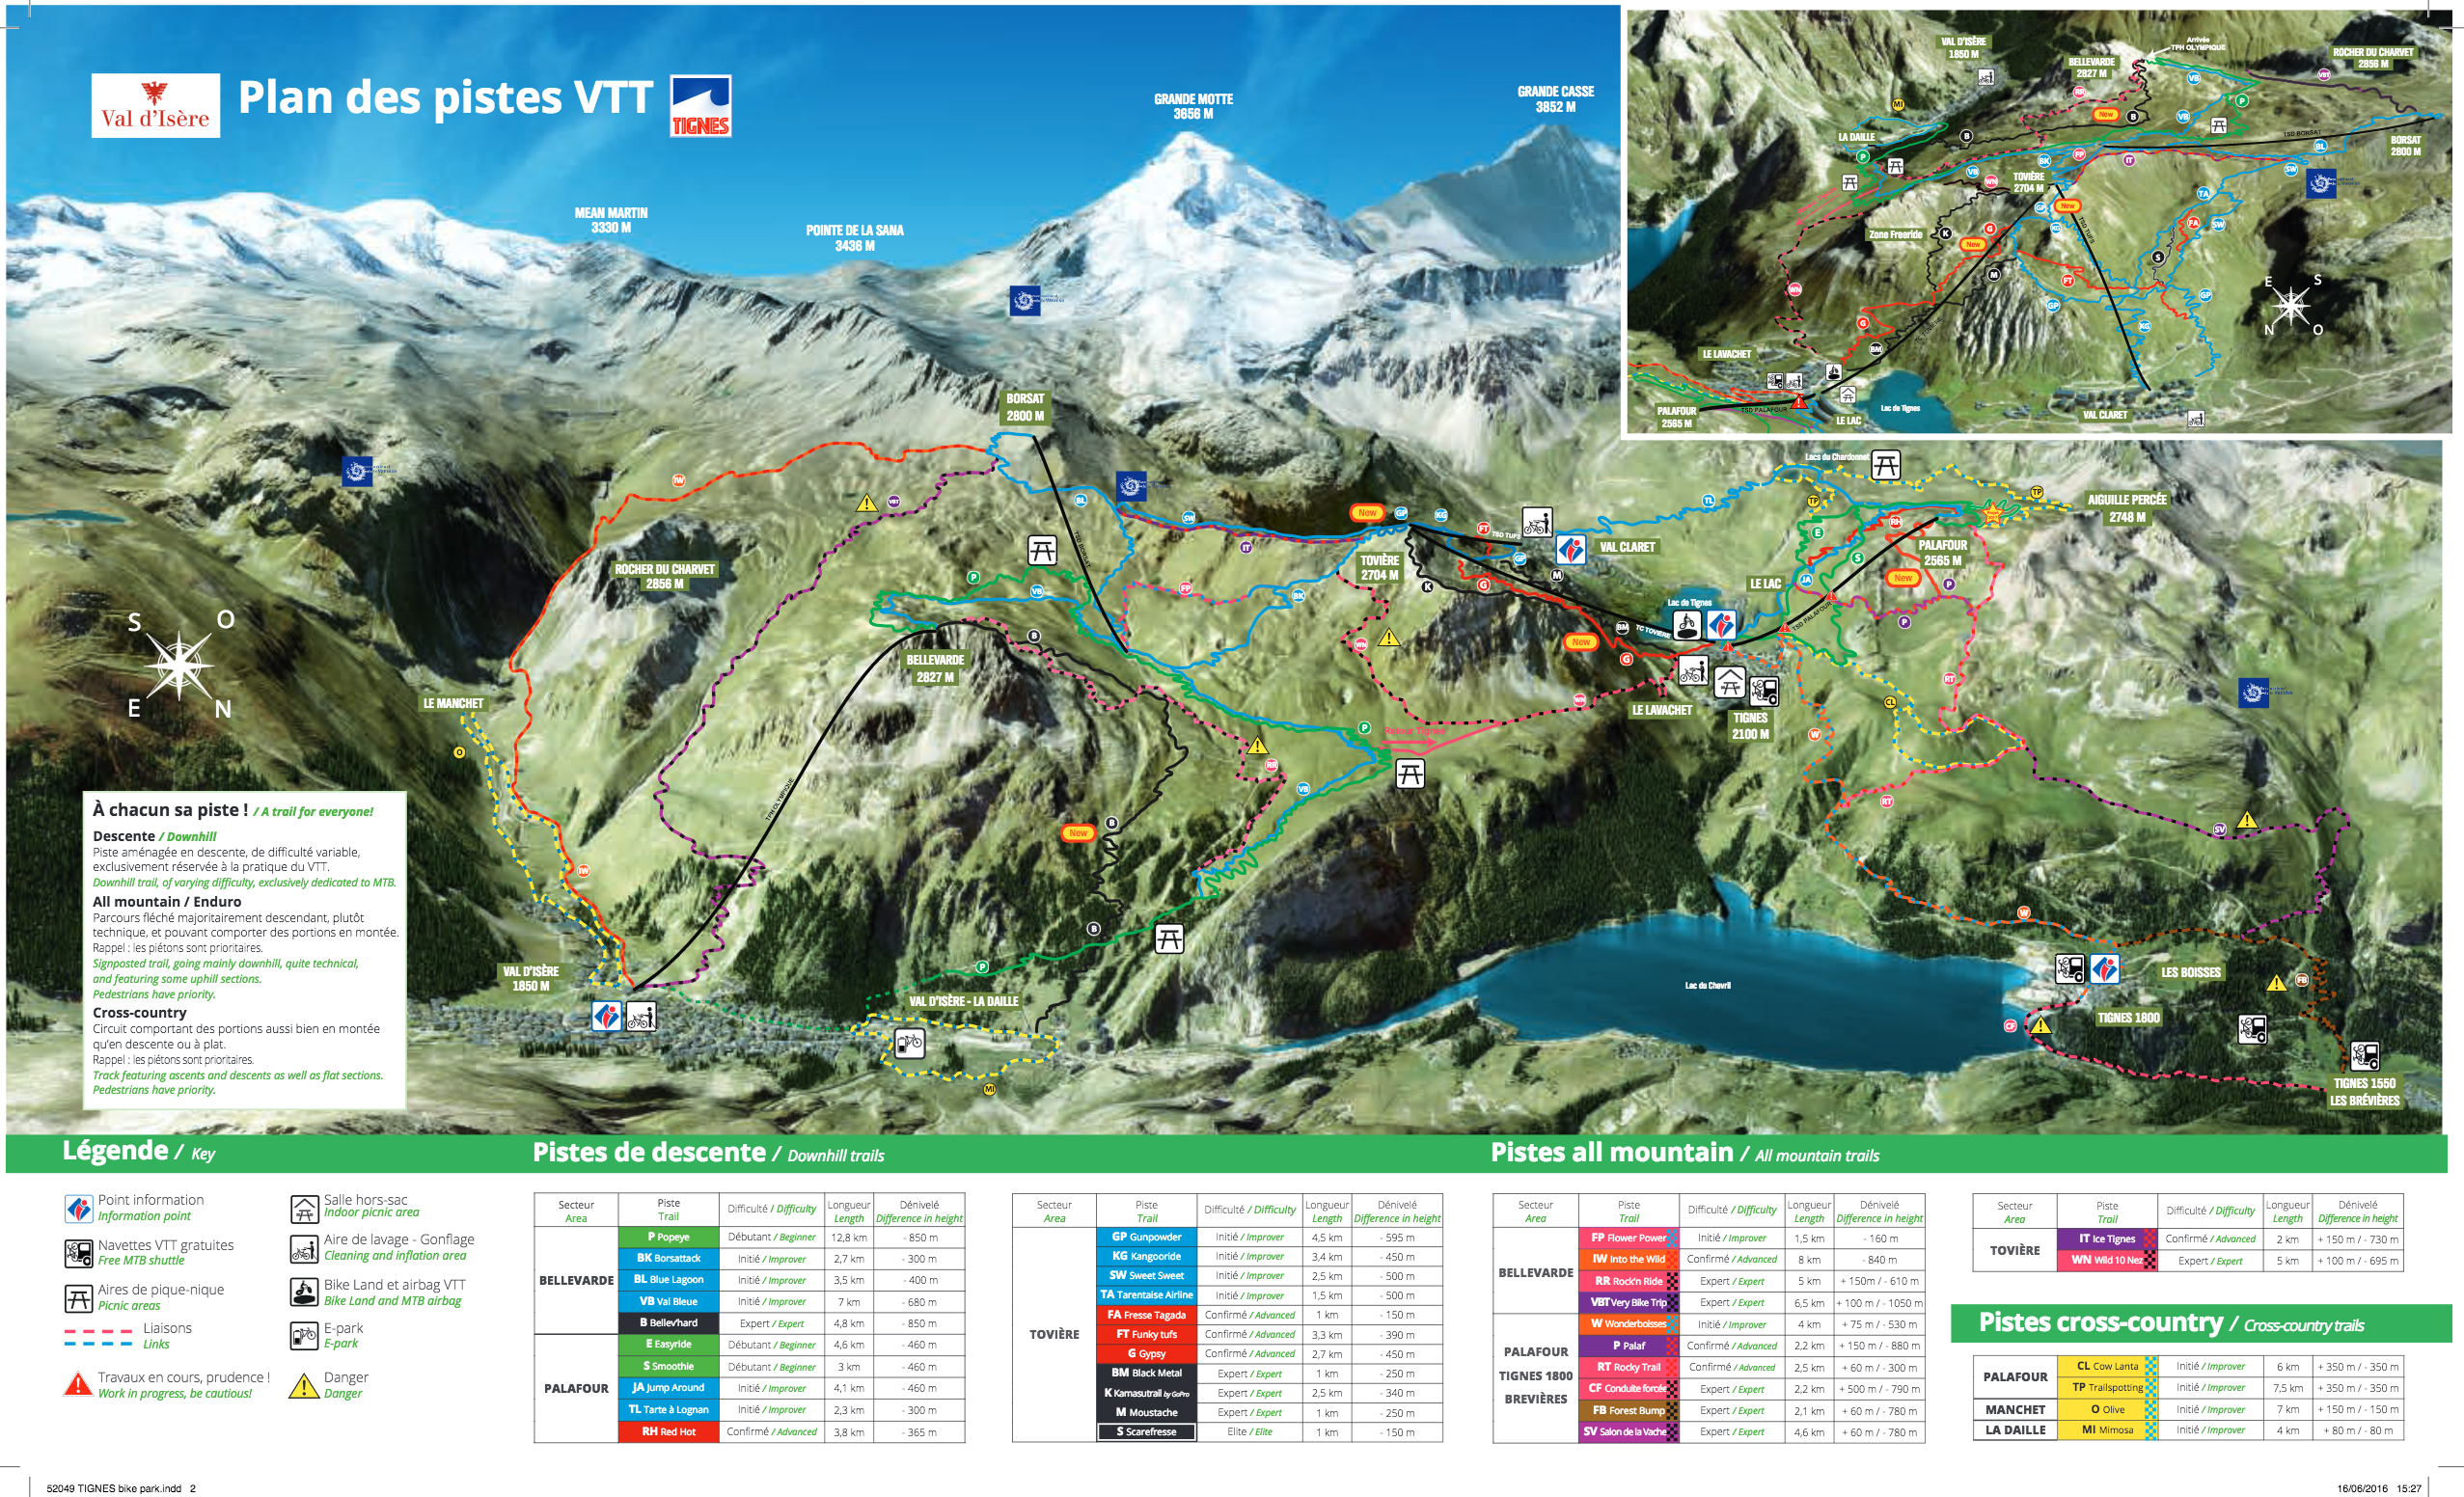 Tignes Streckenplan (Quelle: http://en.tignes.net/what-to-see-do/do-something/summer/bike-park-tignes/mtb-area)